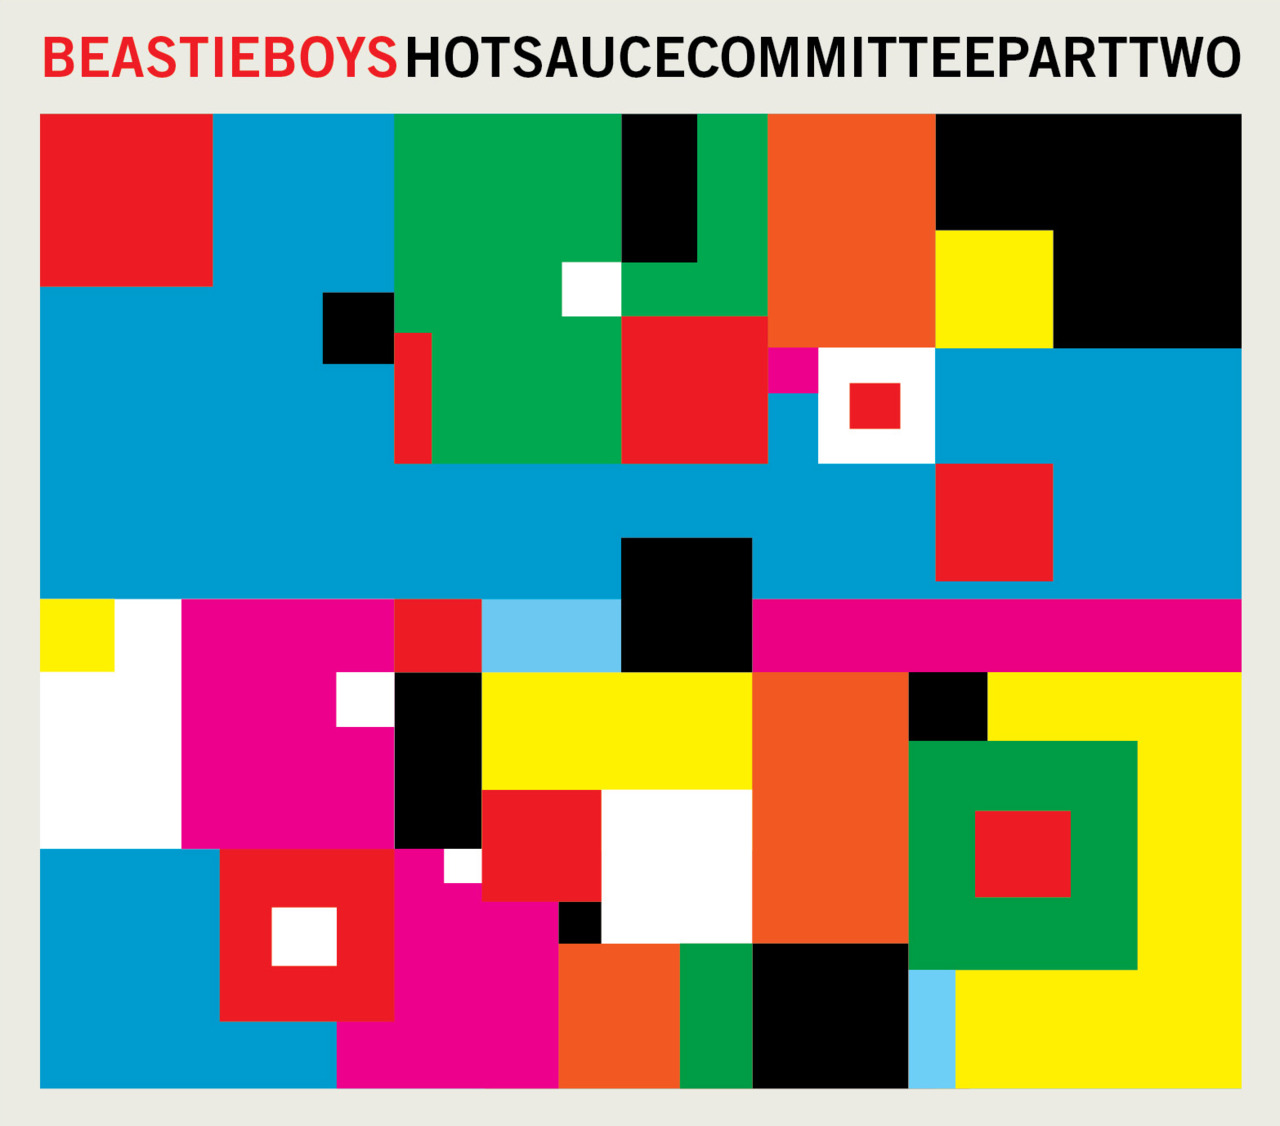 Beastie Boys Hot Sauce Committee Part Two Album Cover Meaning?